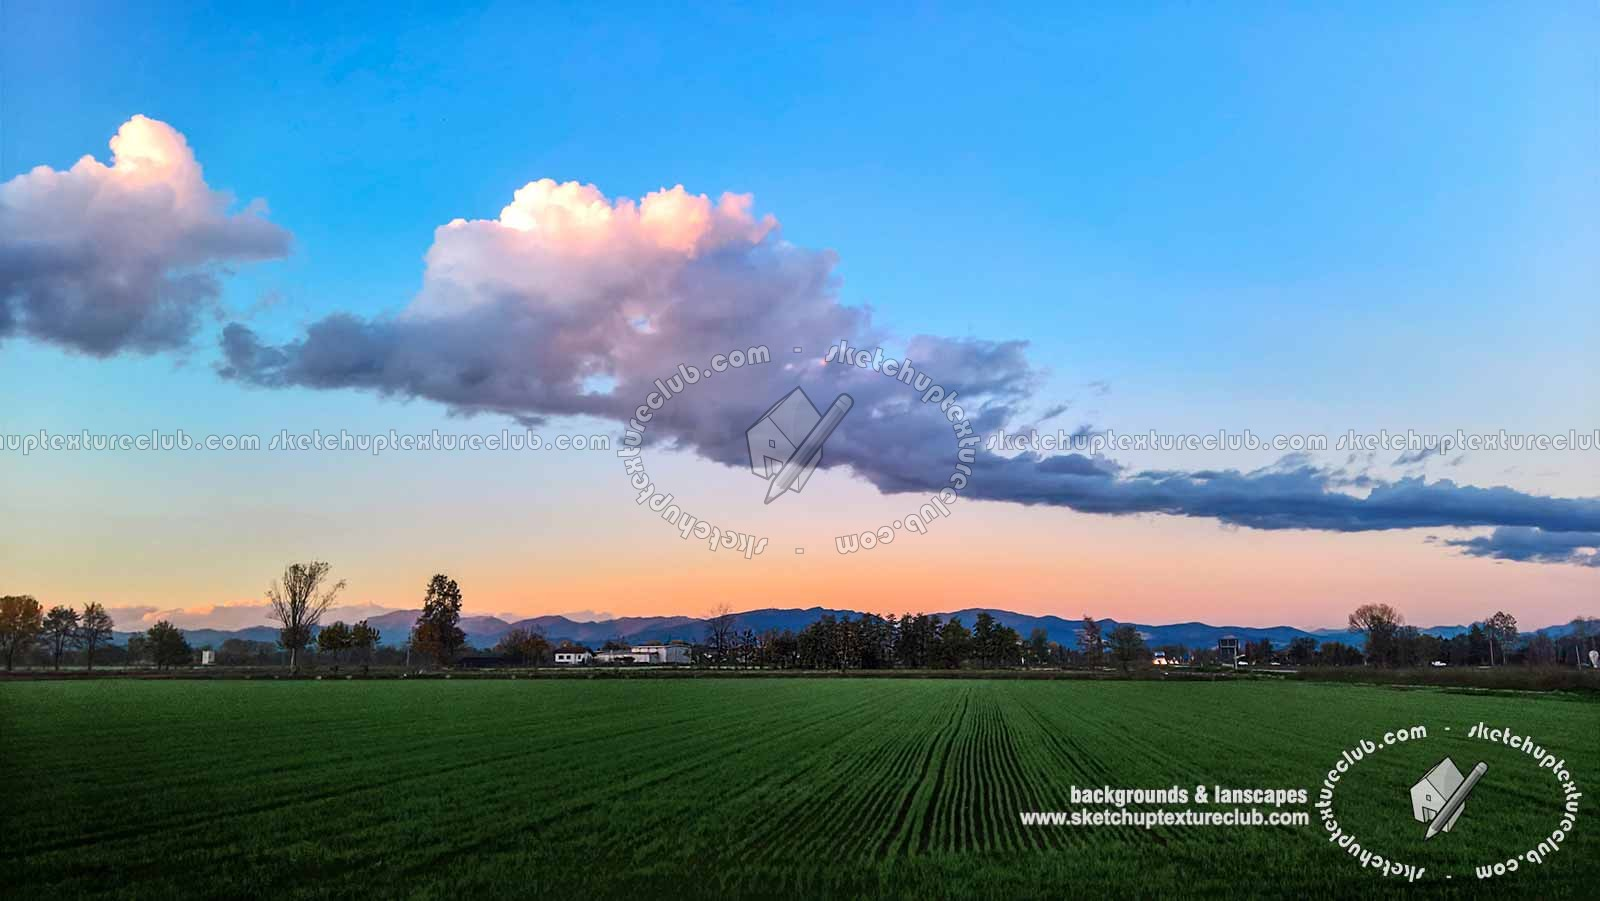 Autumn sunset with countryside background 21016